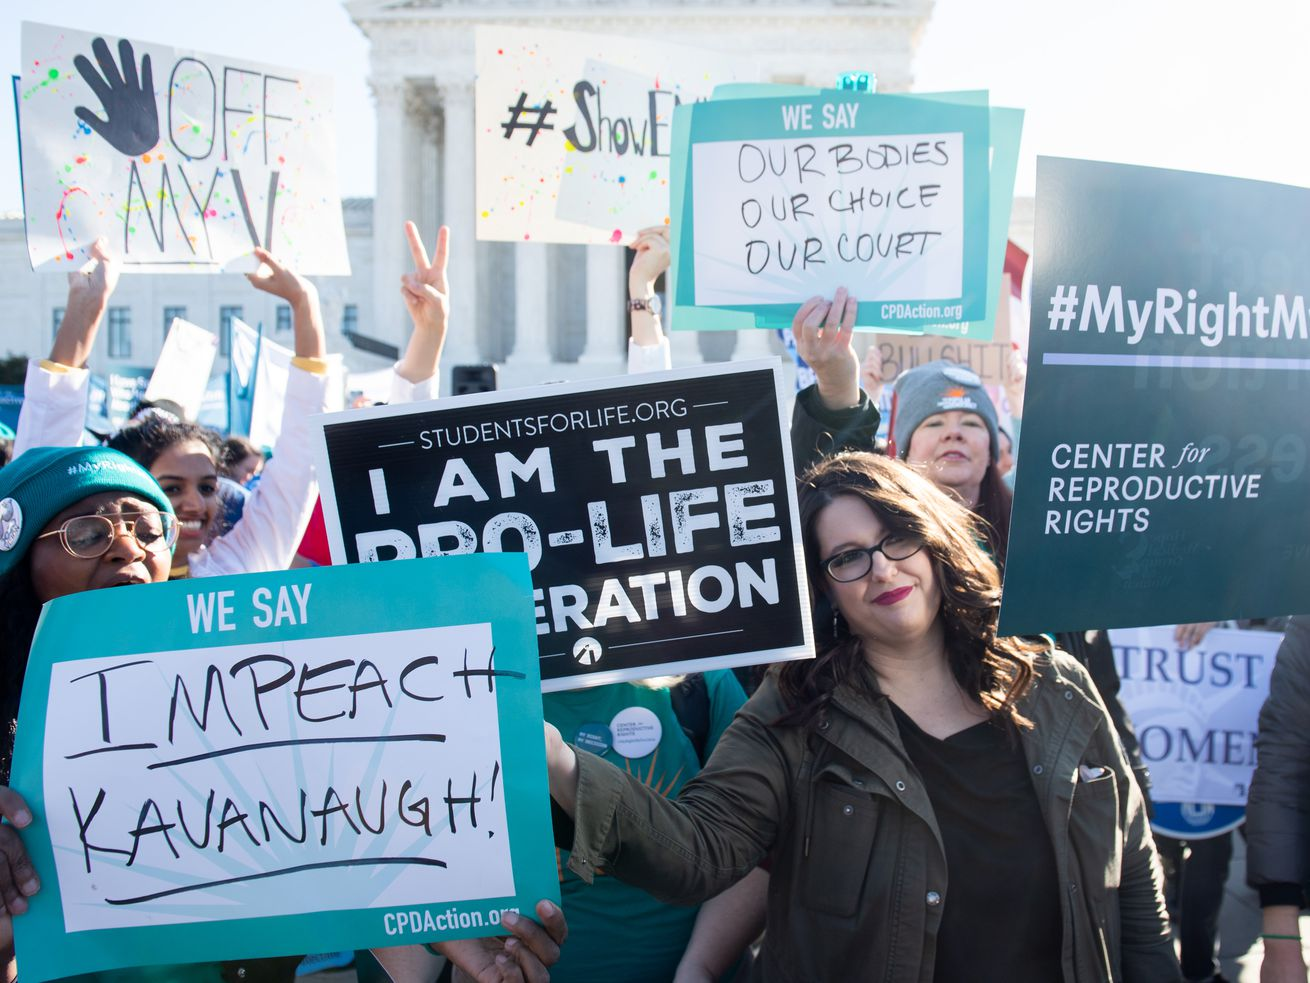 """Activists outside the Supreme Court holding signs with messages like """"Impeach Kavanaugh"""" and """"I am the pro-life generation."""""""